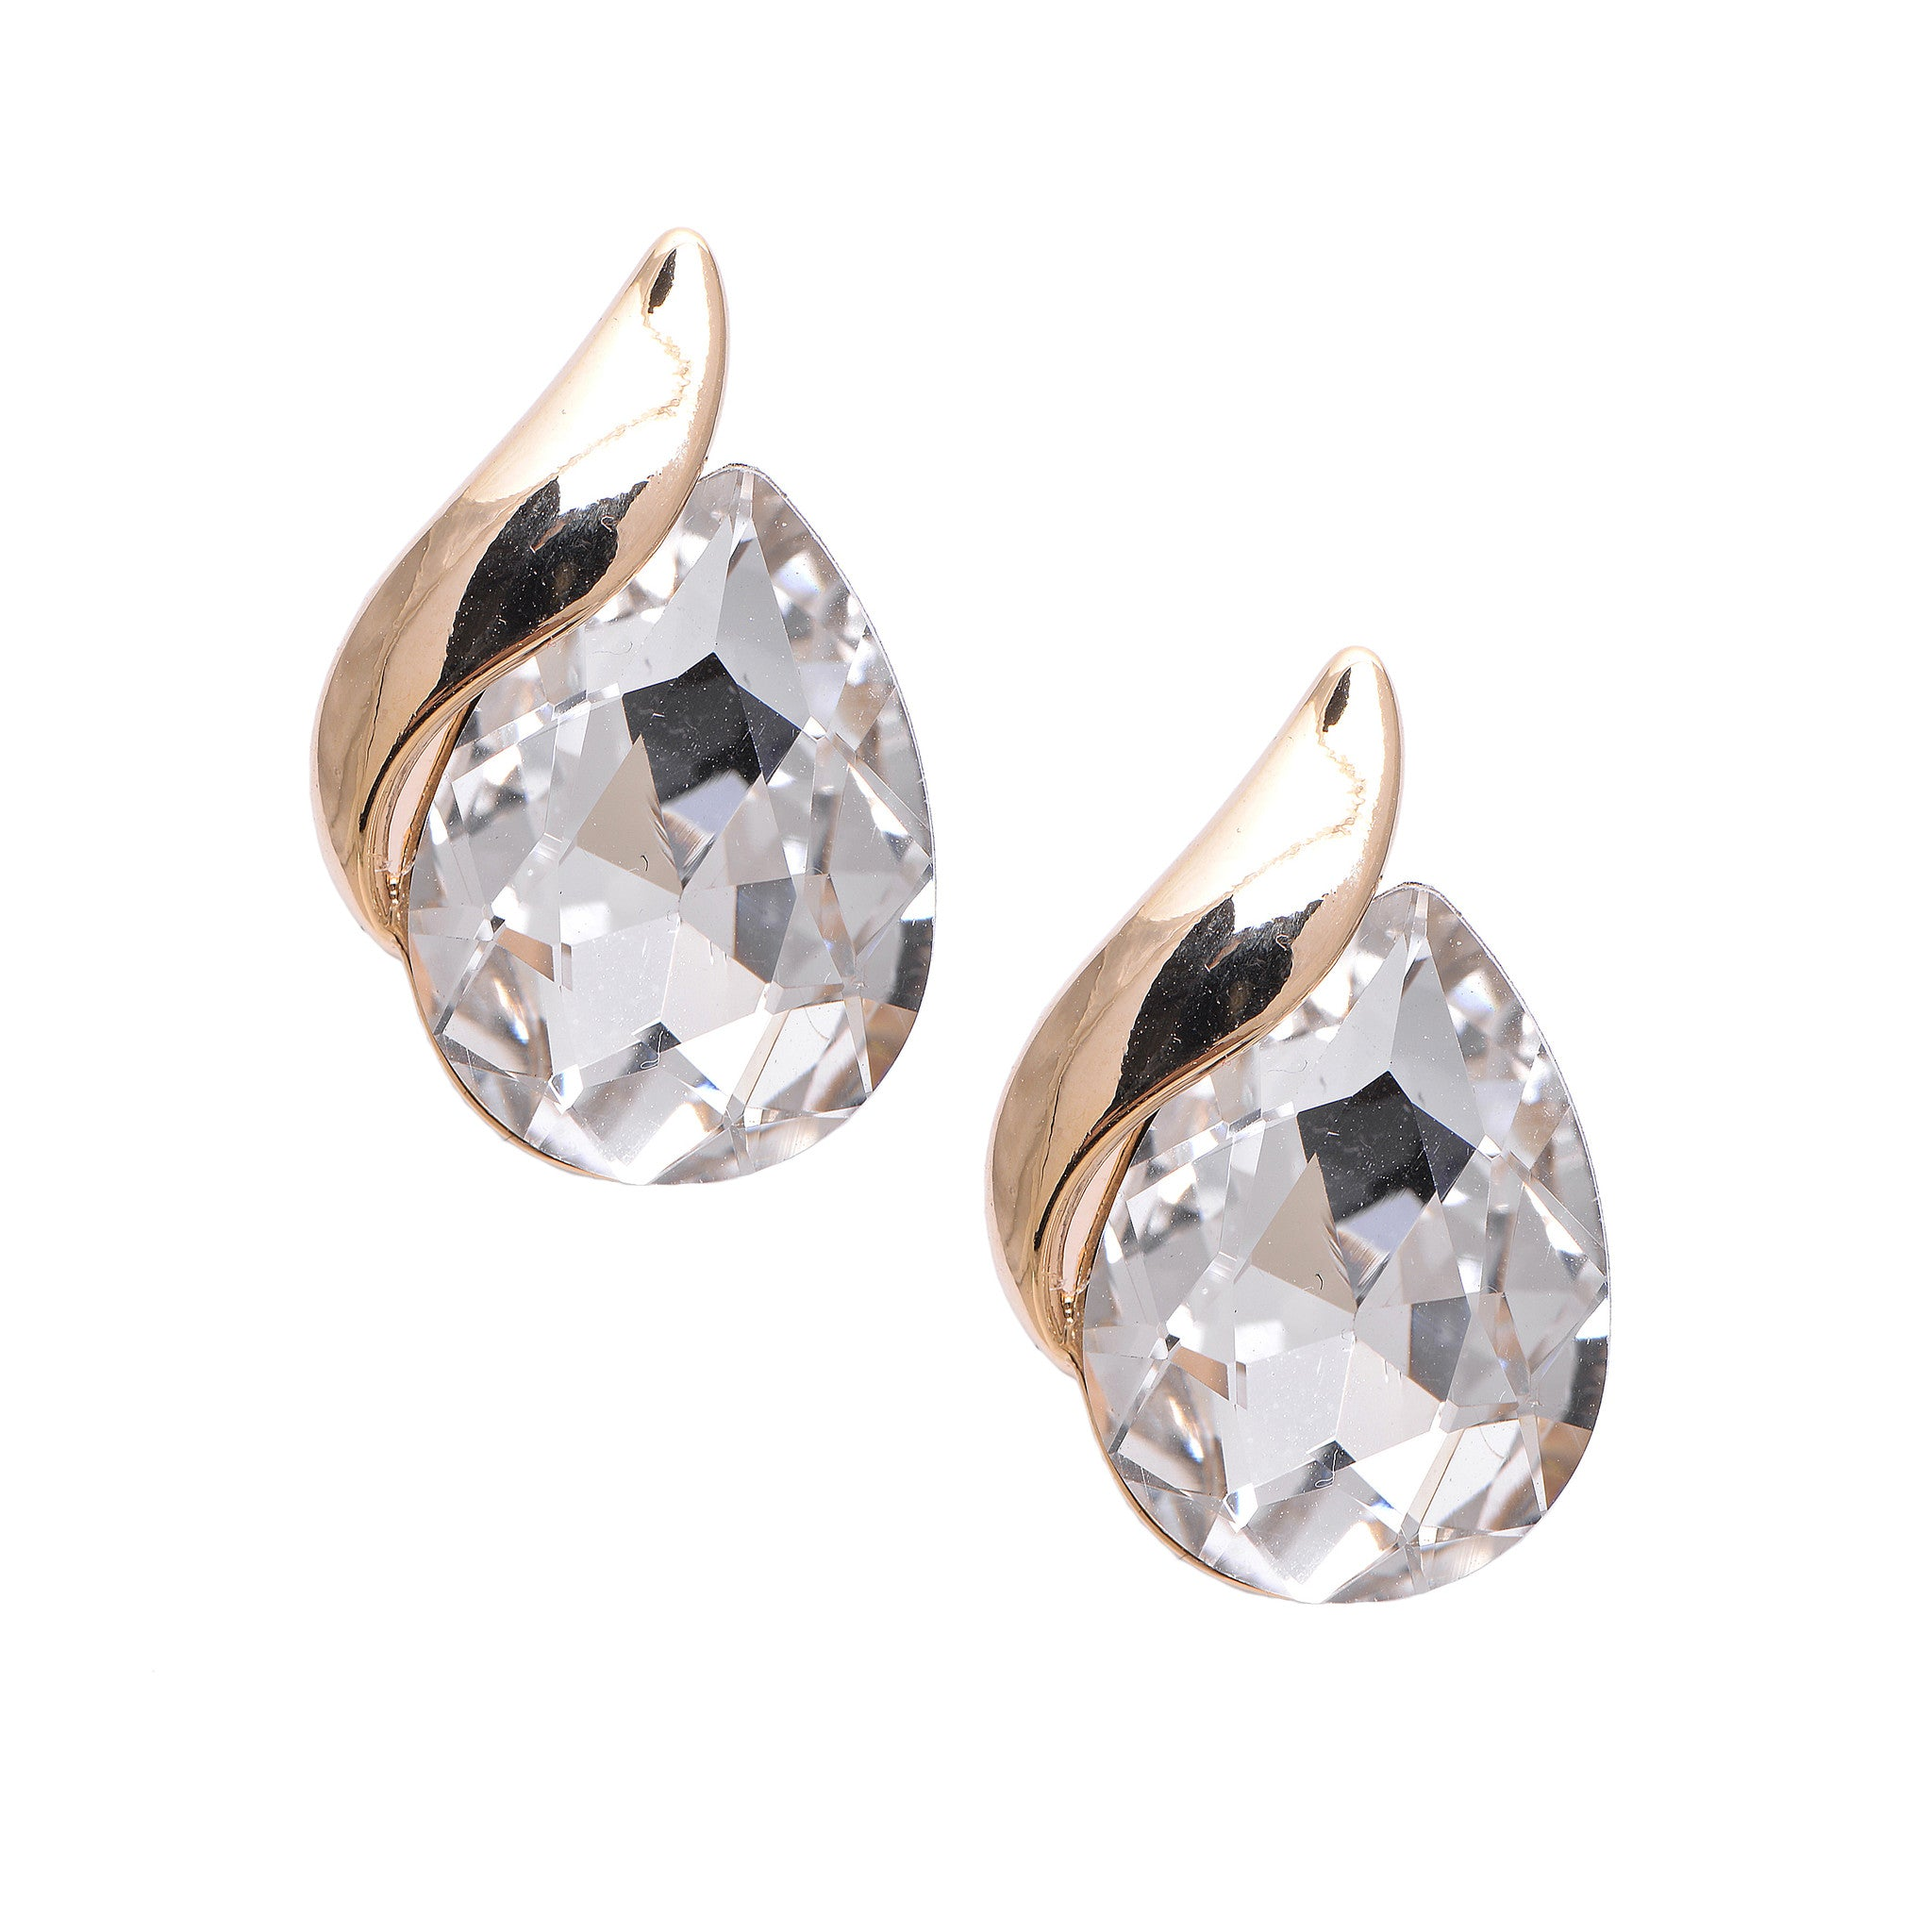 with velazquez diamonds solitaire canada vel arrera carrera earrings zquez yg product y add